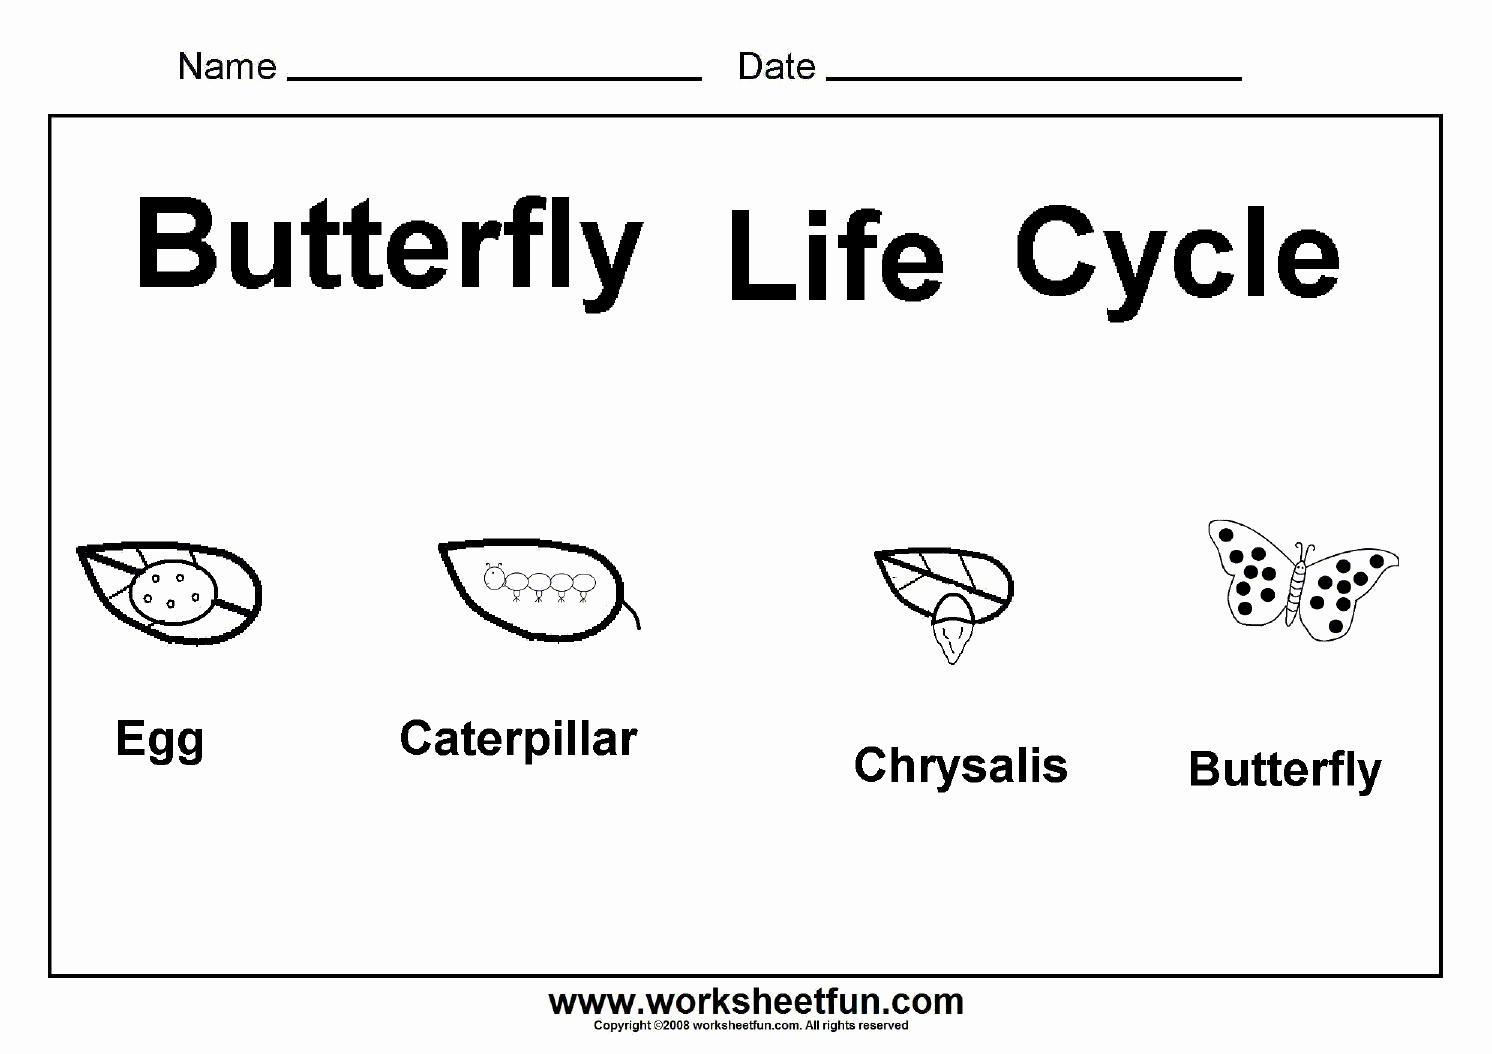 Butterfly Life Cycle Worksheet Unique butterfly Life Cycle – E Worksheet Free Printable